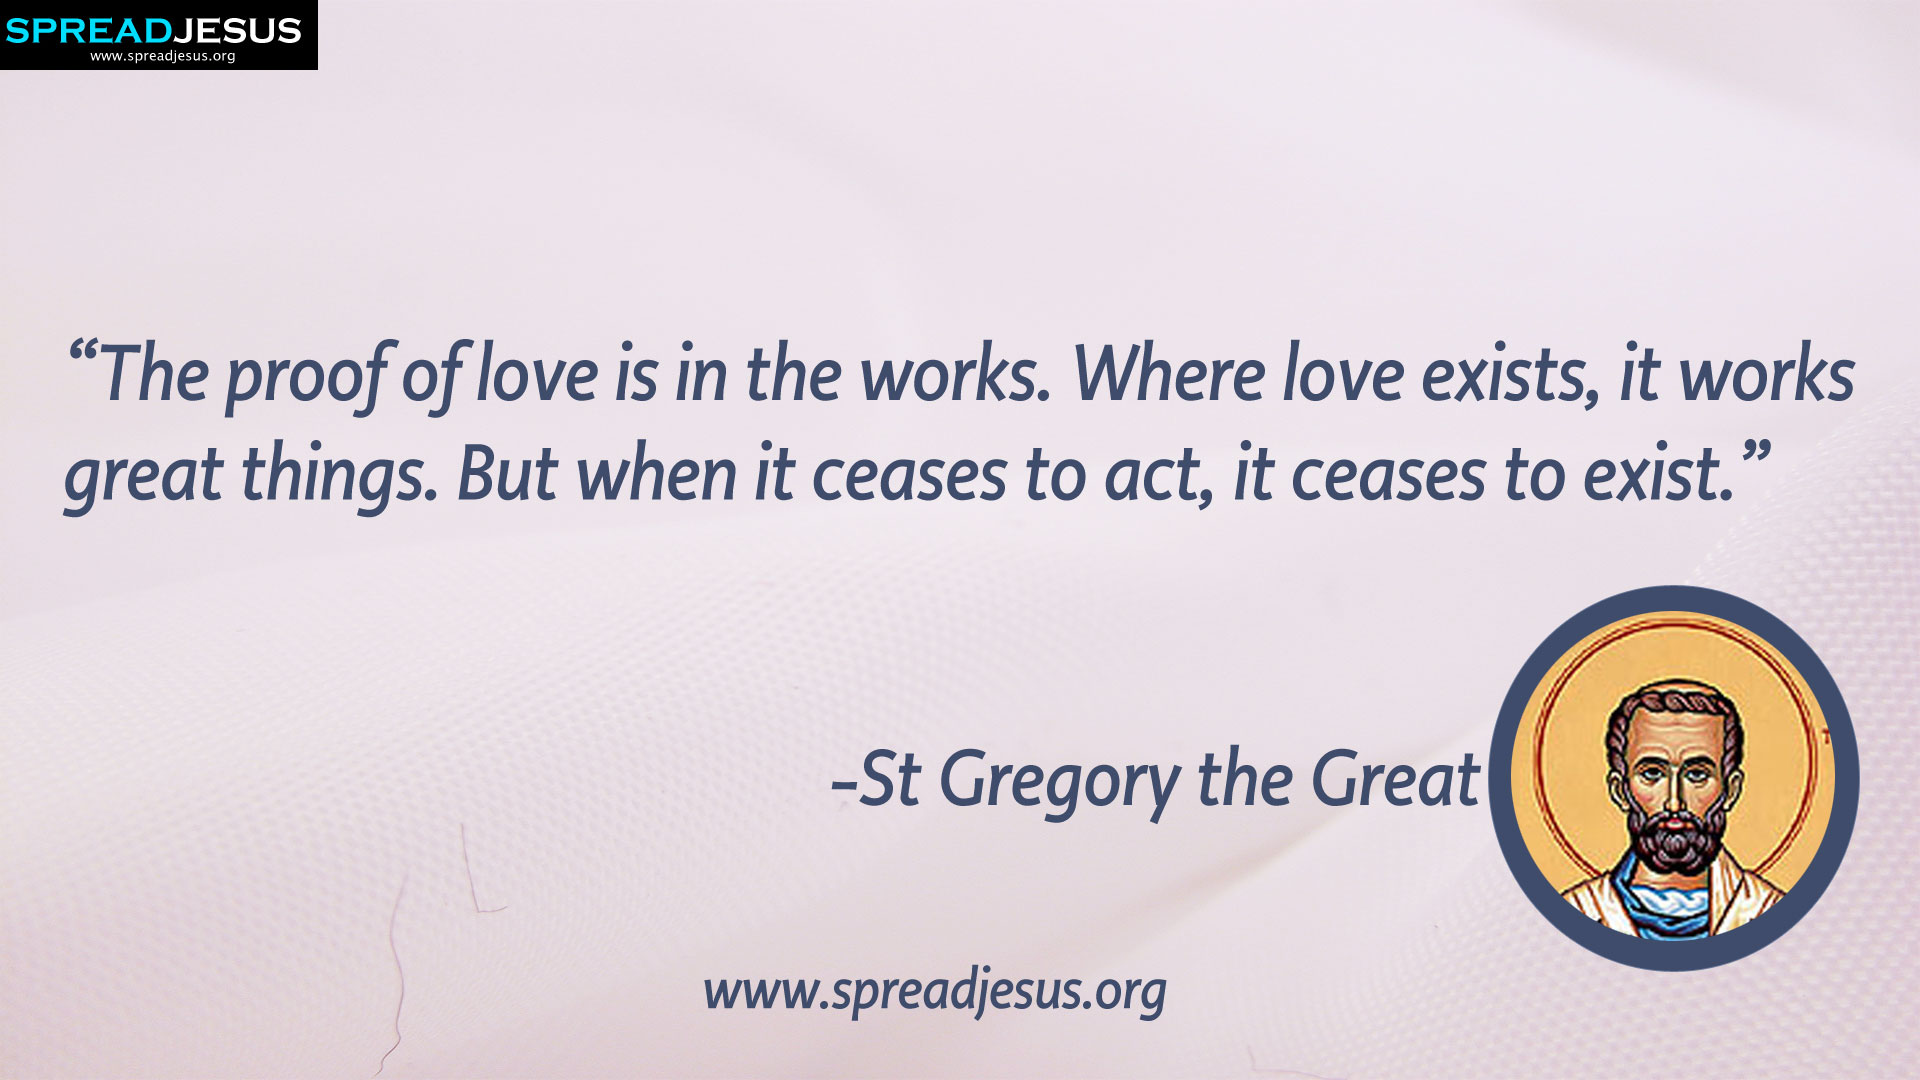 """St Gregory the Great:St Gregory the Great QUOTES HD-WALLPAPERS DOWNLOAD:CATHOLIC SAINT QUOTES HD-WALLPAPERS DOWNLOAD-""""The proof of love is in the works. Where love exists, it works great things.-St Gregory the Great-spreadjesus.org"""